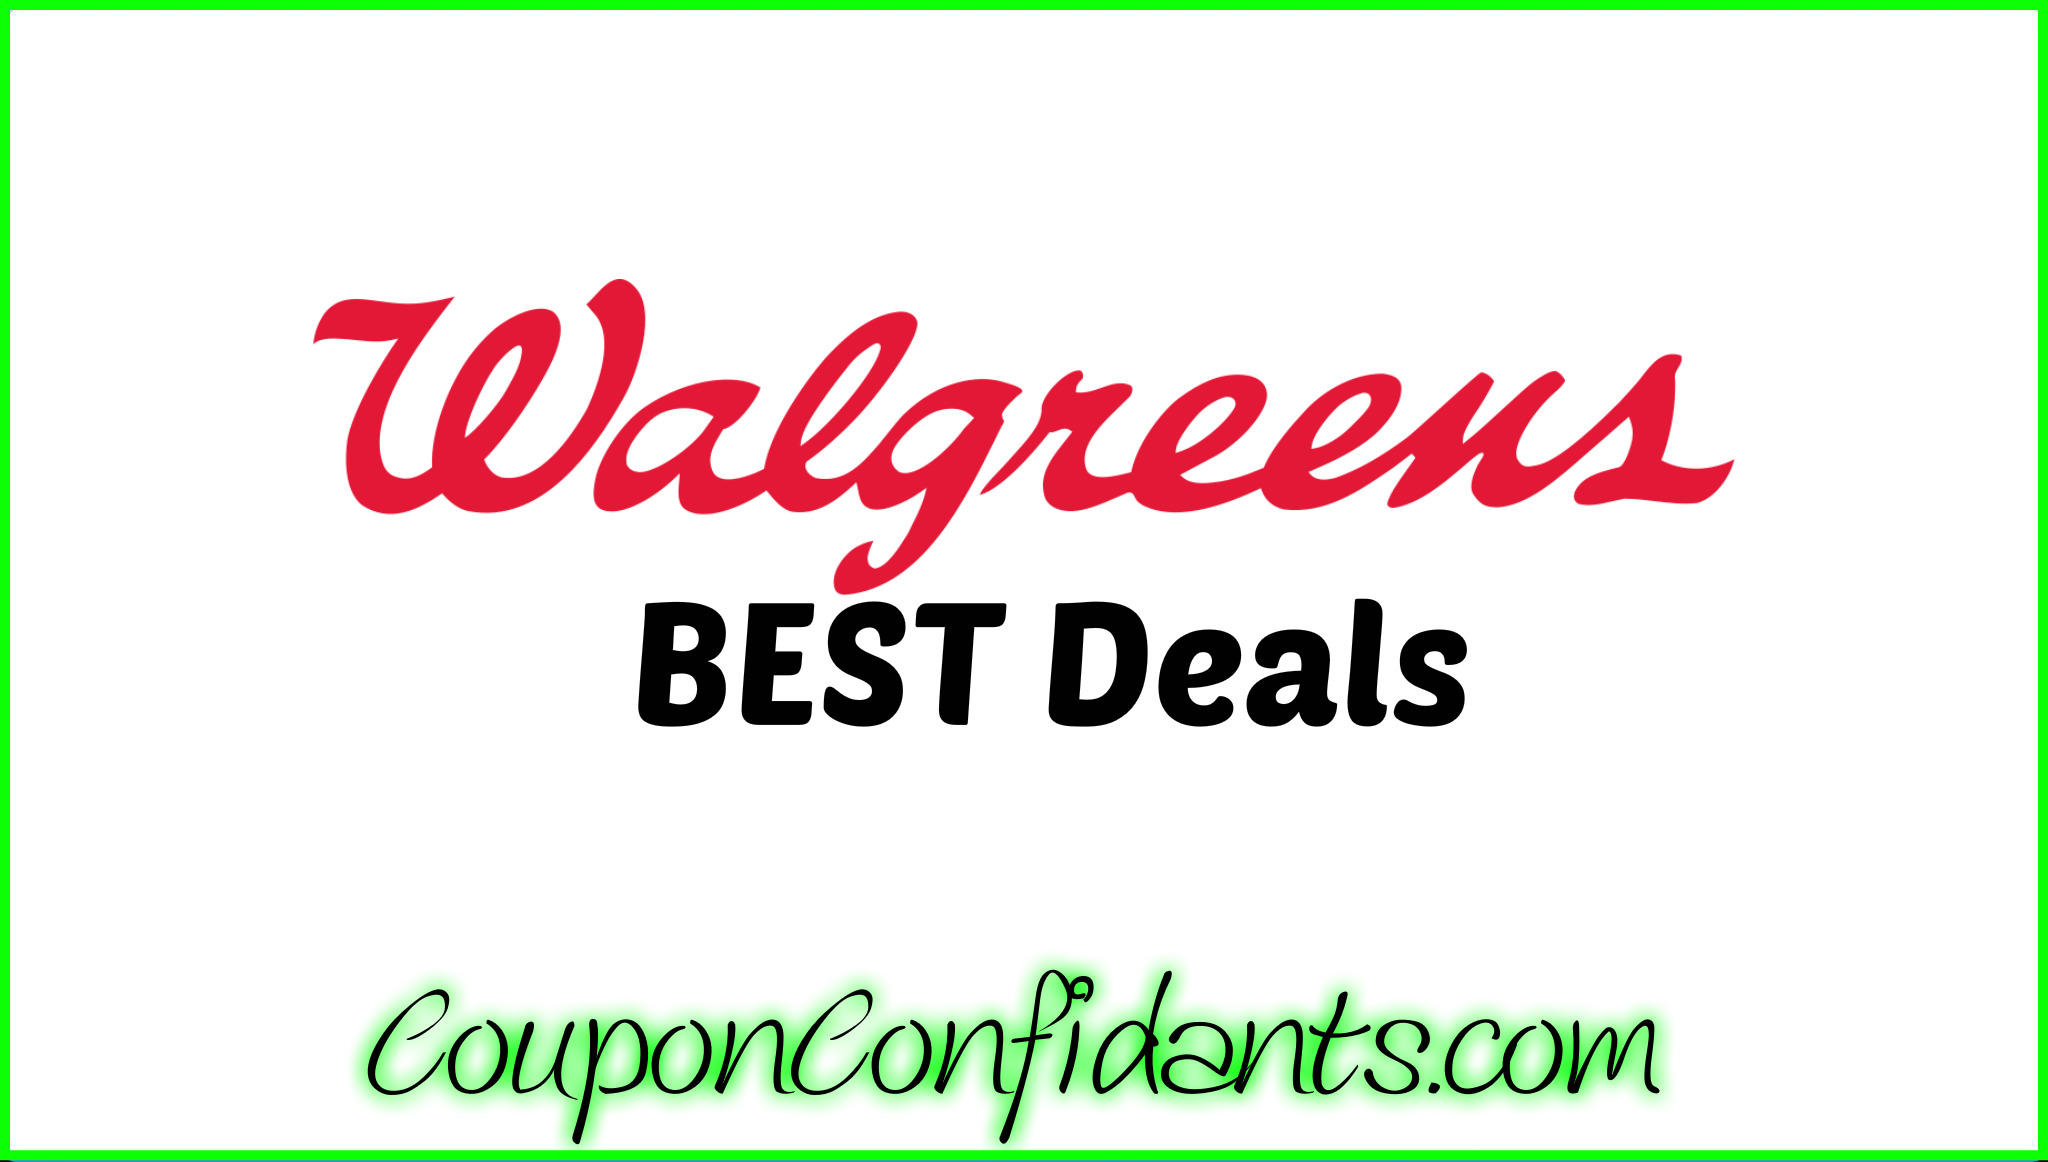 Walgreens Best Deals Aug 13 - 19